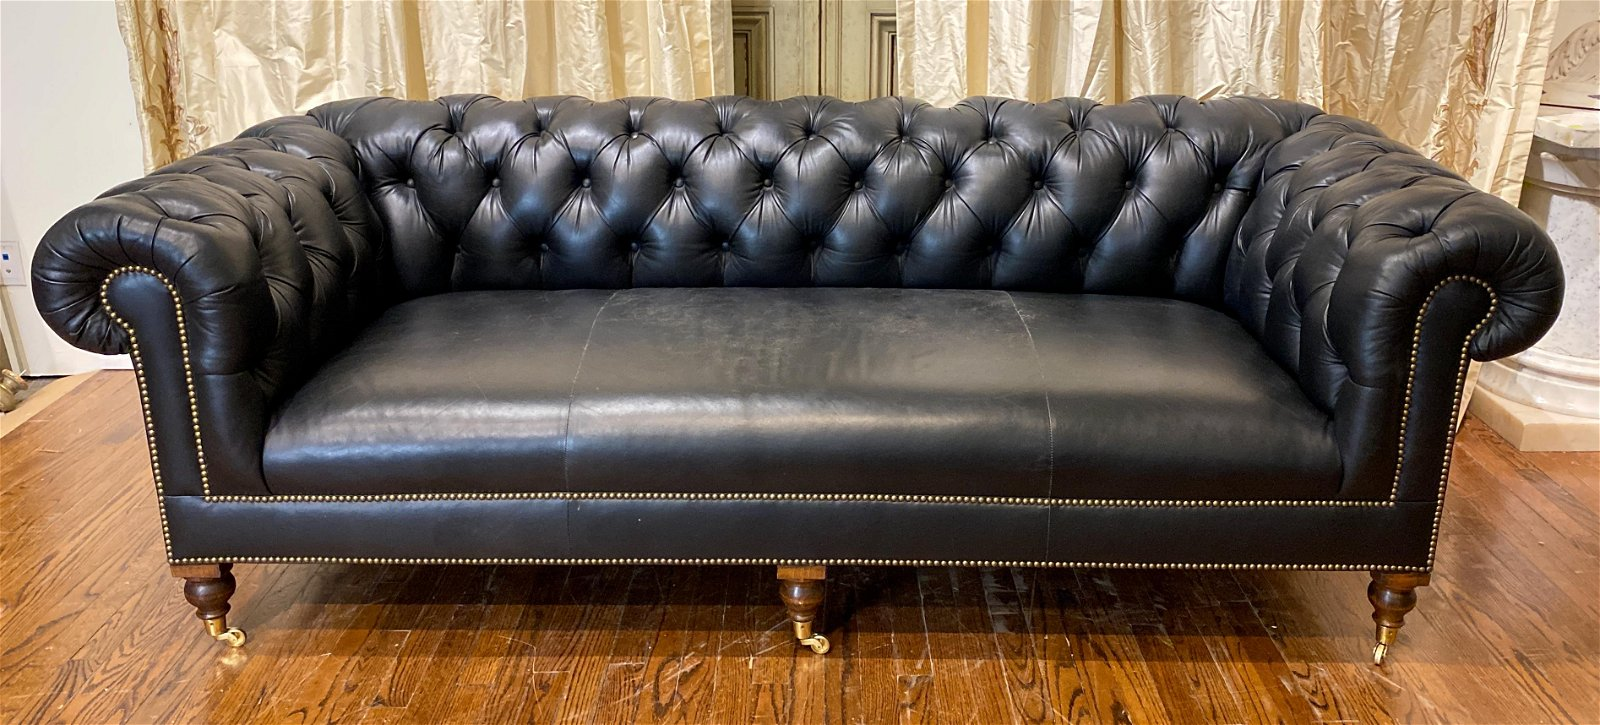 Black Leather Chesterfield Sofa